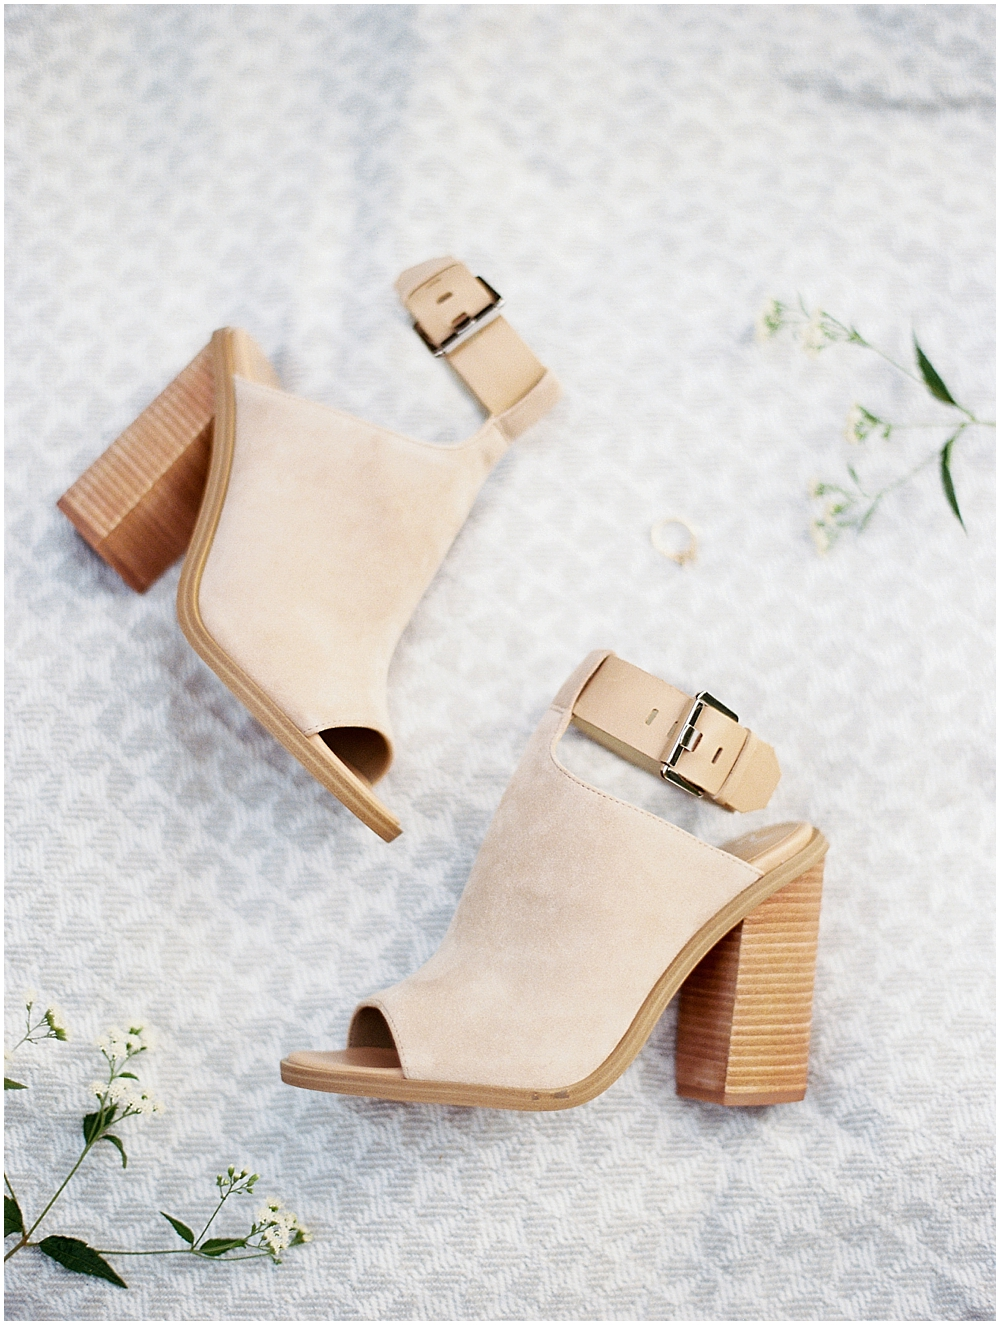 Romantic and Stylish Engagement Shoes